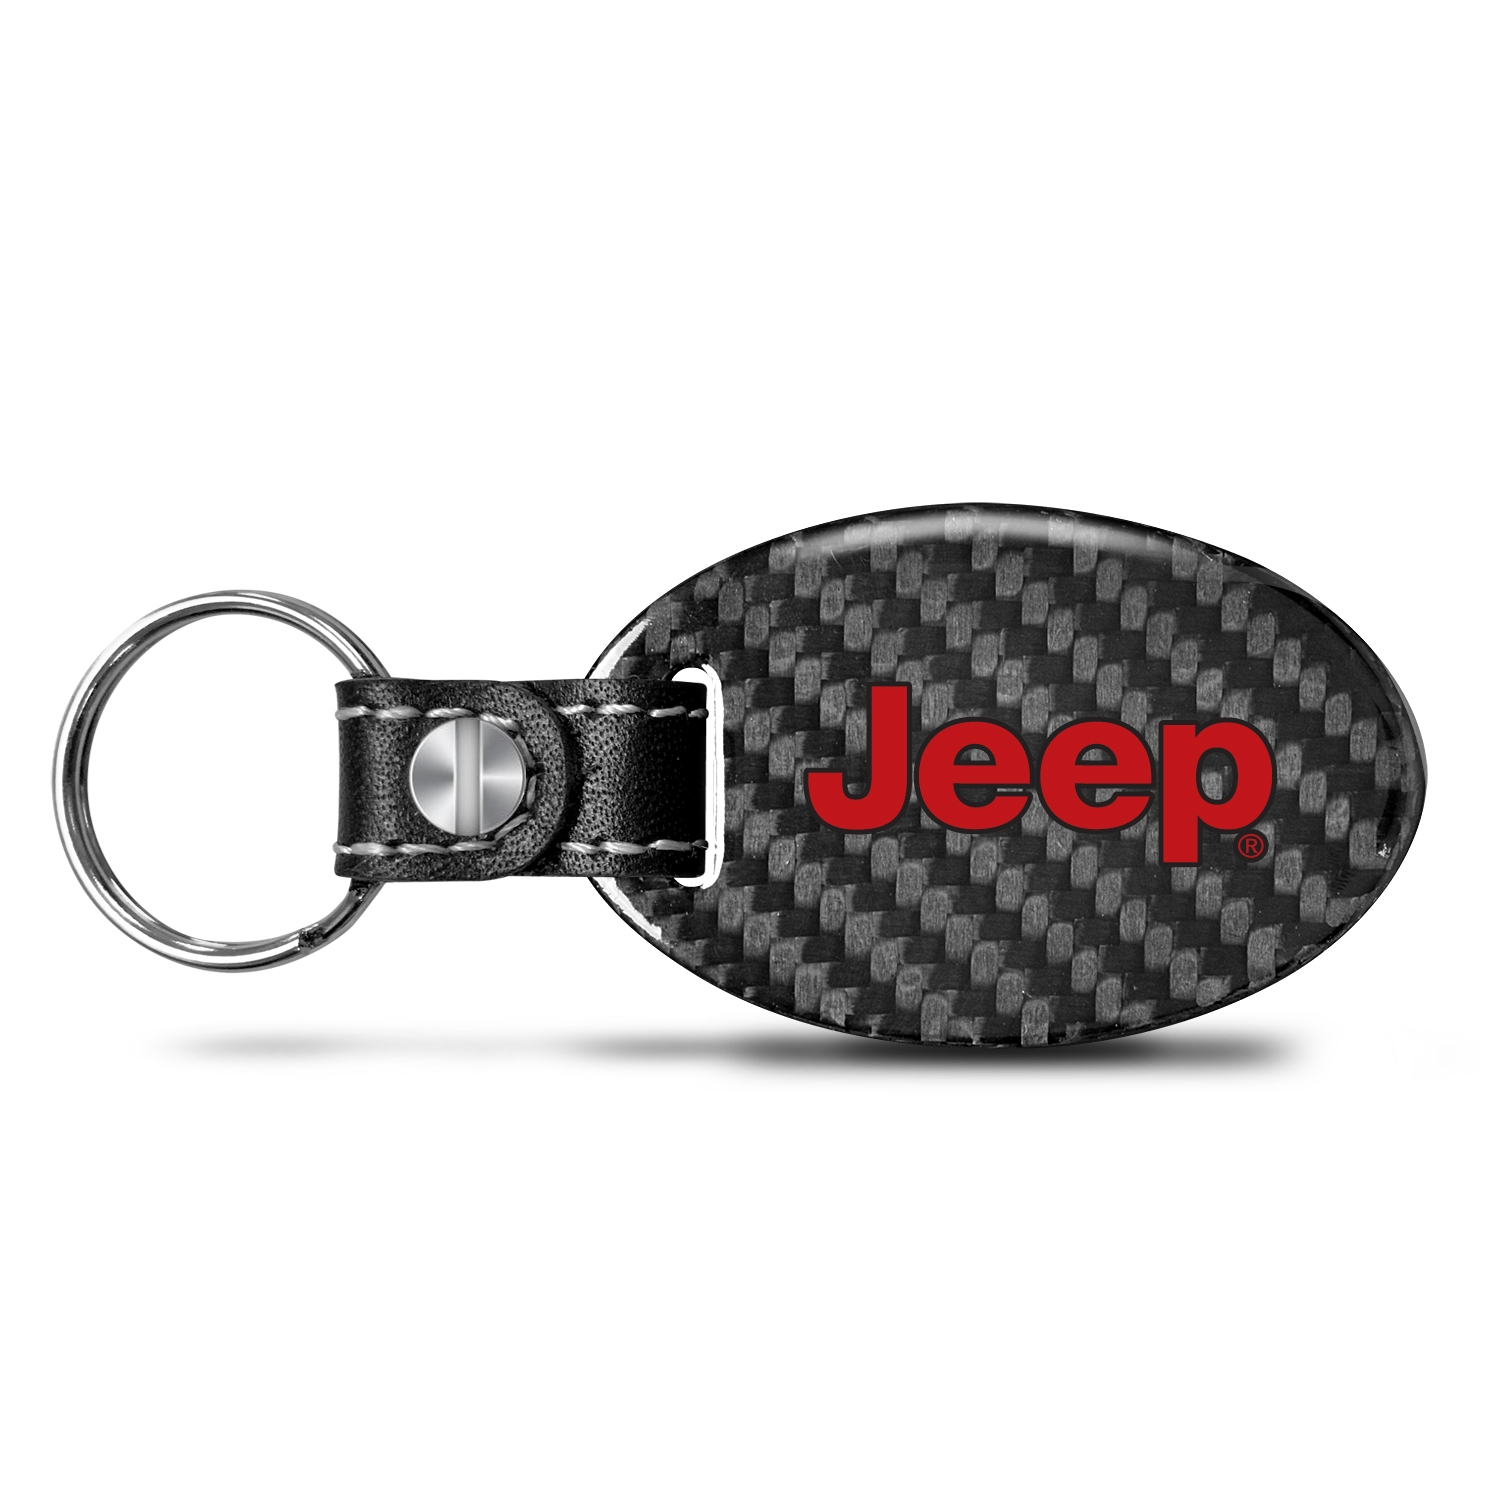 Jeep in Red Real Carbon Fiber Large Oval Shape with Black Leather Strap Key Chain